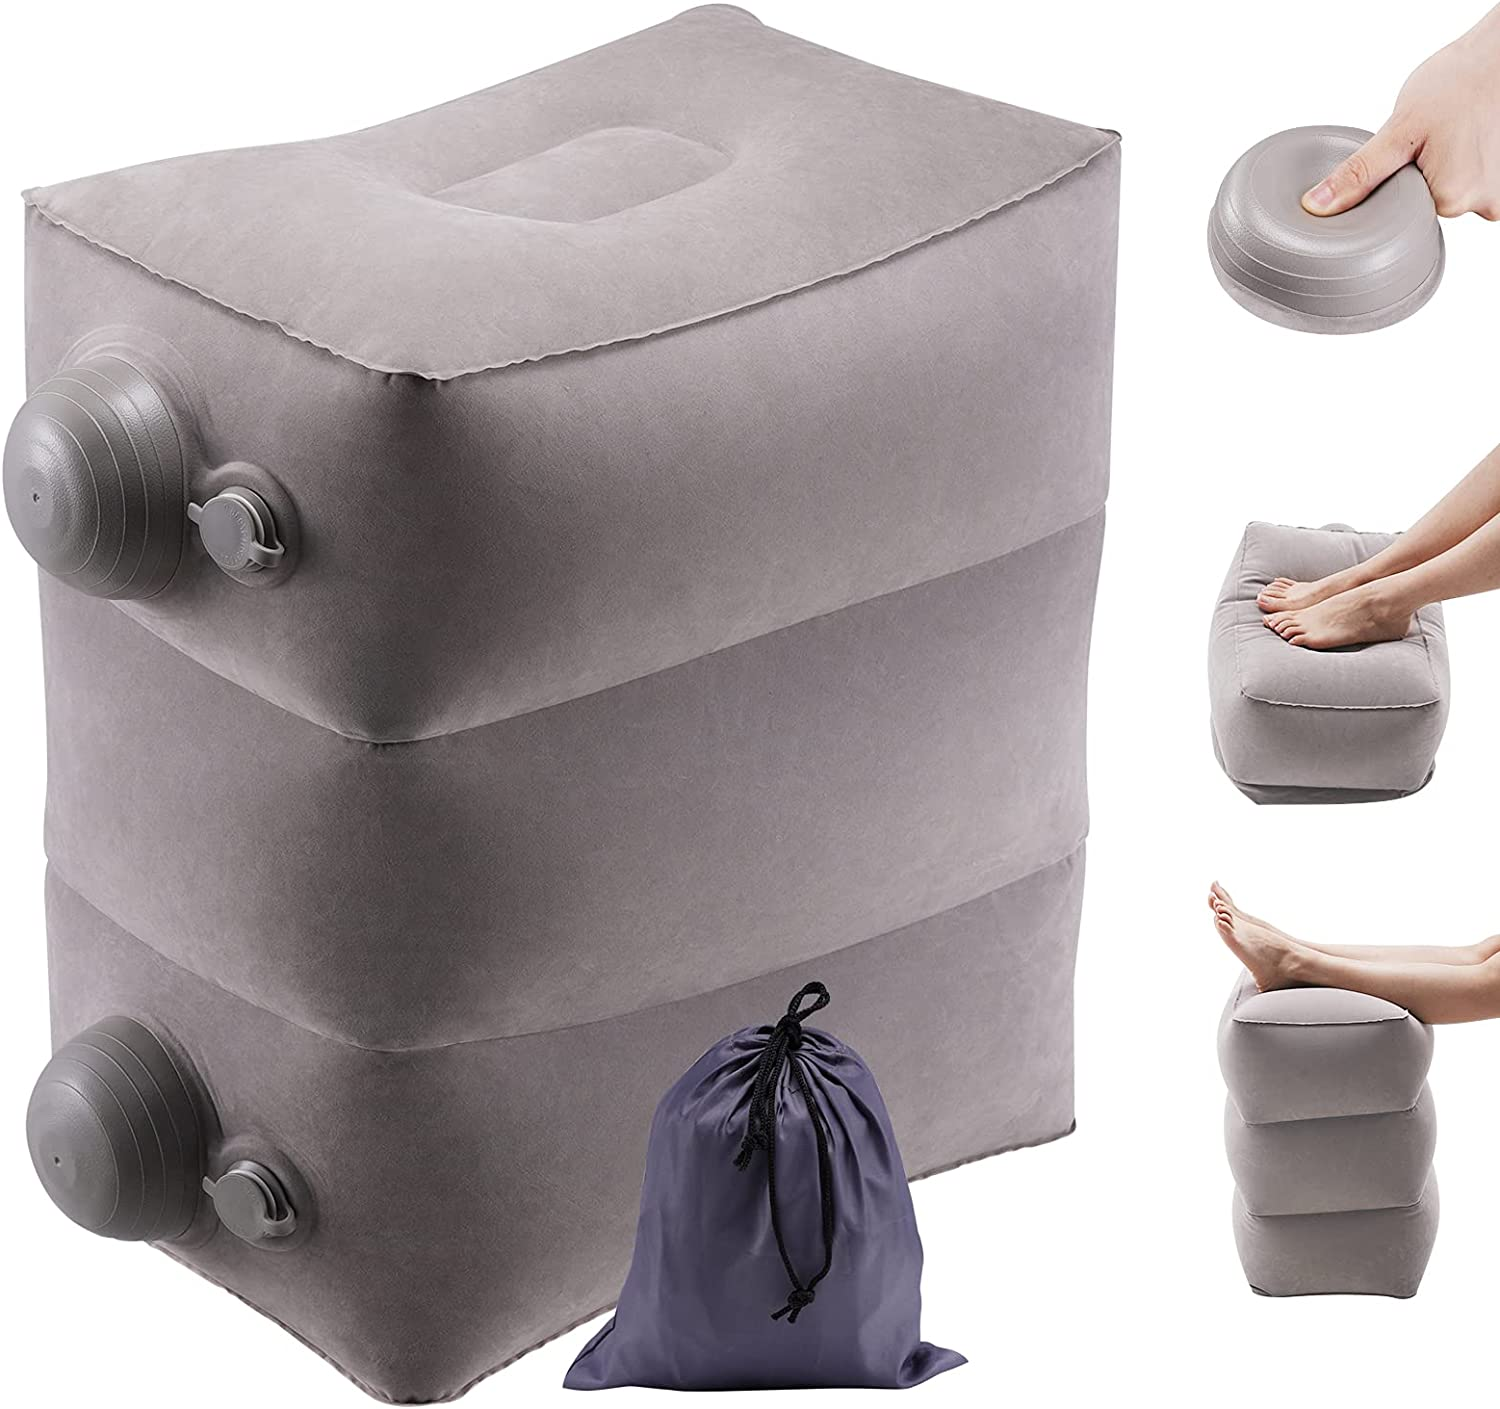 DEYAOPUPU Inflatable Travel Foot Rest Adjustable L Height Popular shop Max 47% OFF is the lowest price challenge Pillow